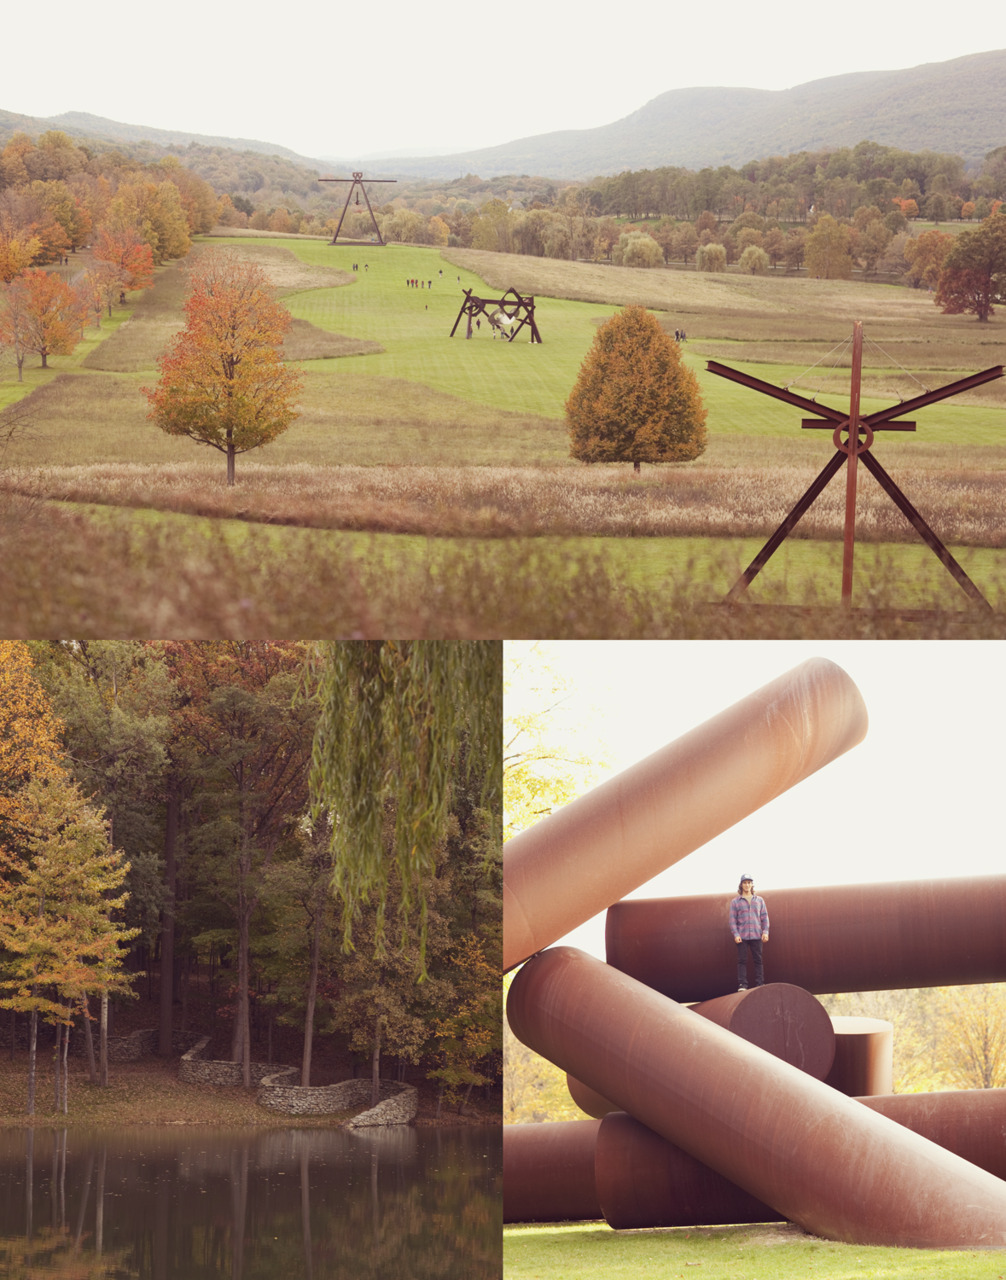 Tony and I visited Storm King this past weekend and enjoyed the fall in upstate NY.